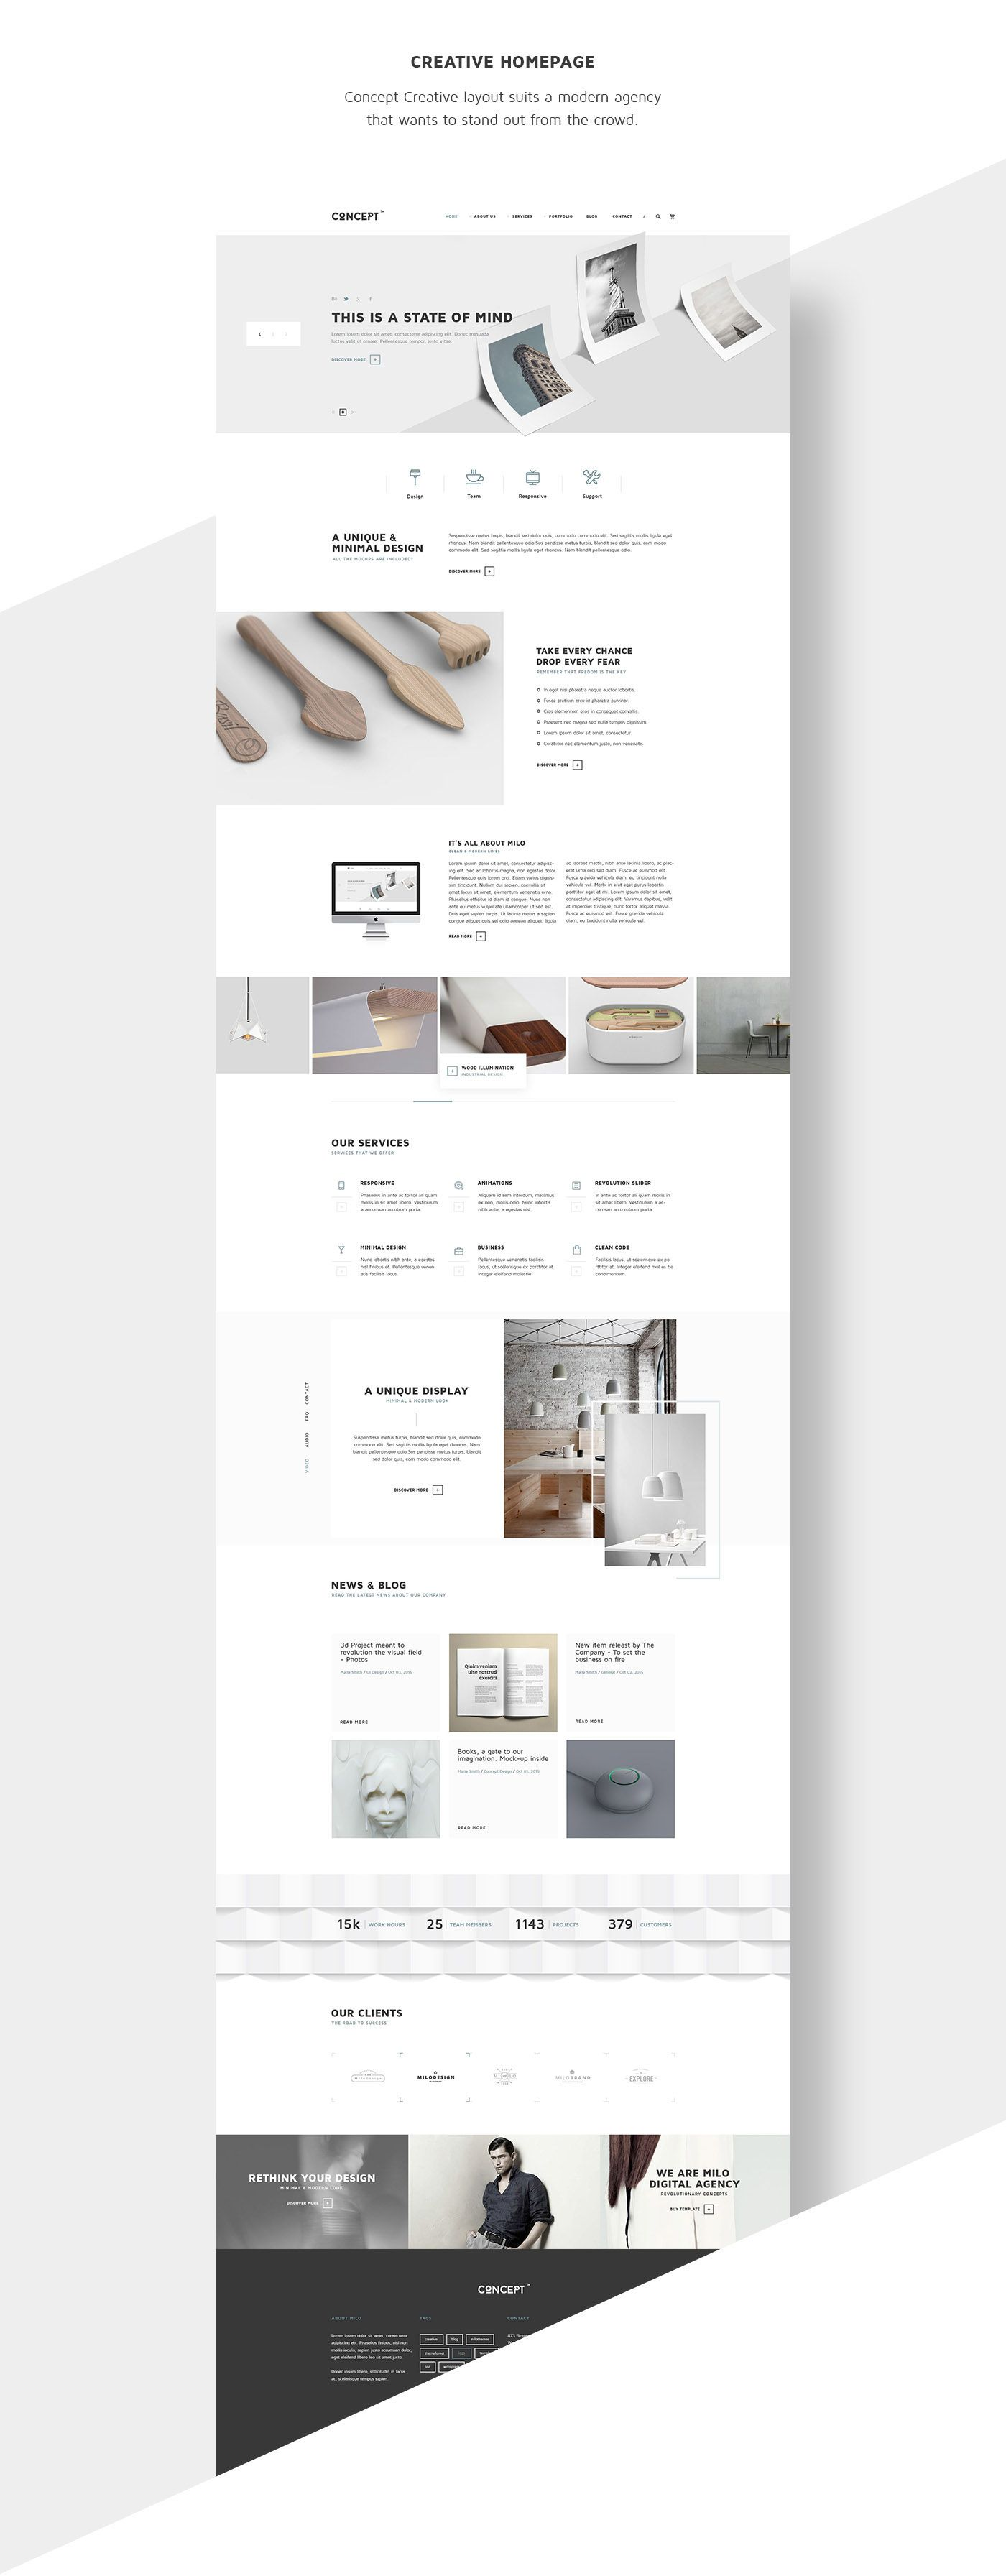 Concept is our latest WordPress Theme developed by milothemes and released on themeforest.net. It includes Revolution Slider Builder, Visual Composer Page Builder and a beautiful shop powered by WooCommerce Plugin. As always, thank you for your support.